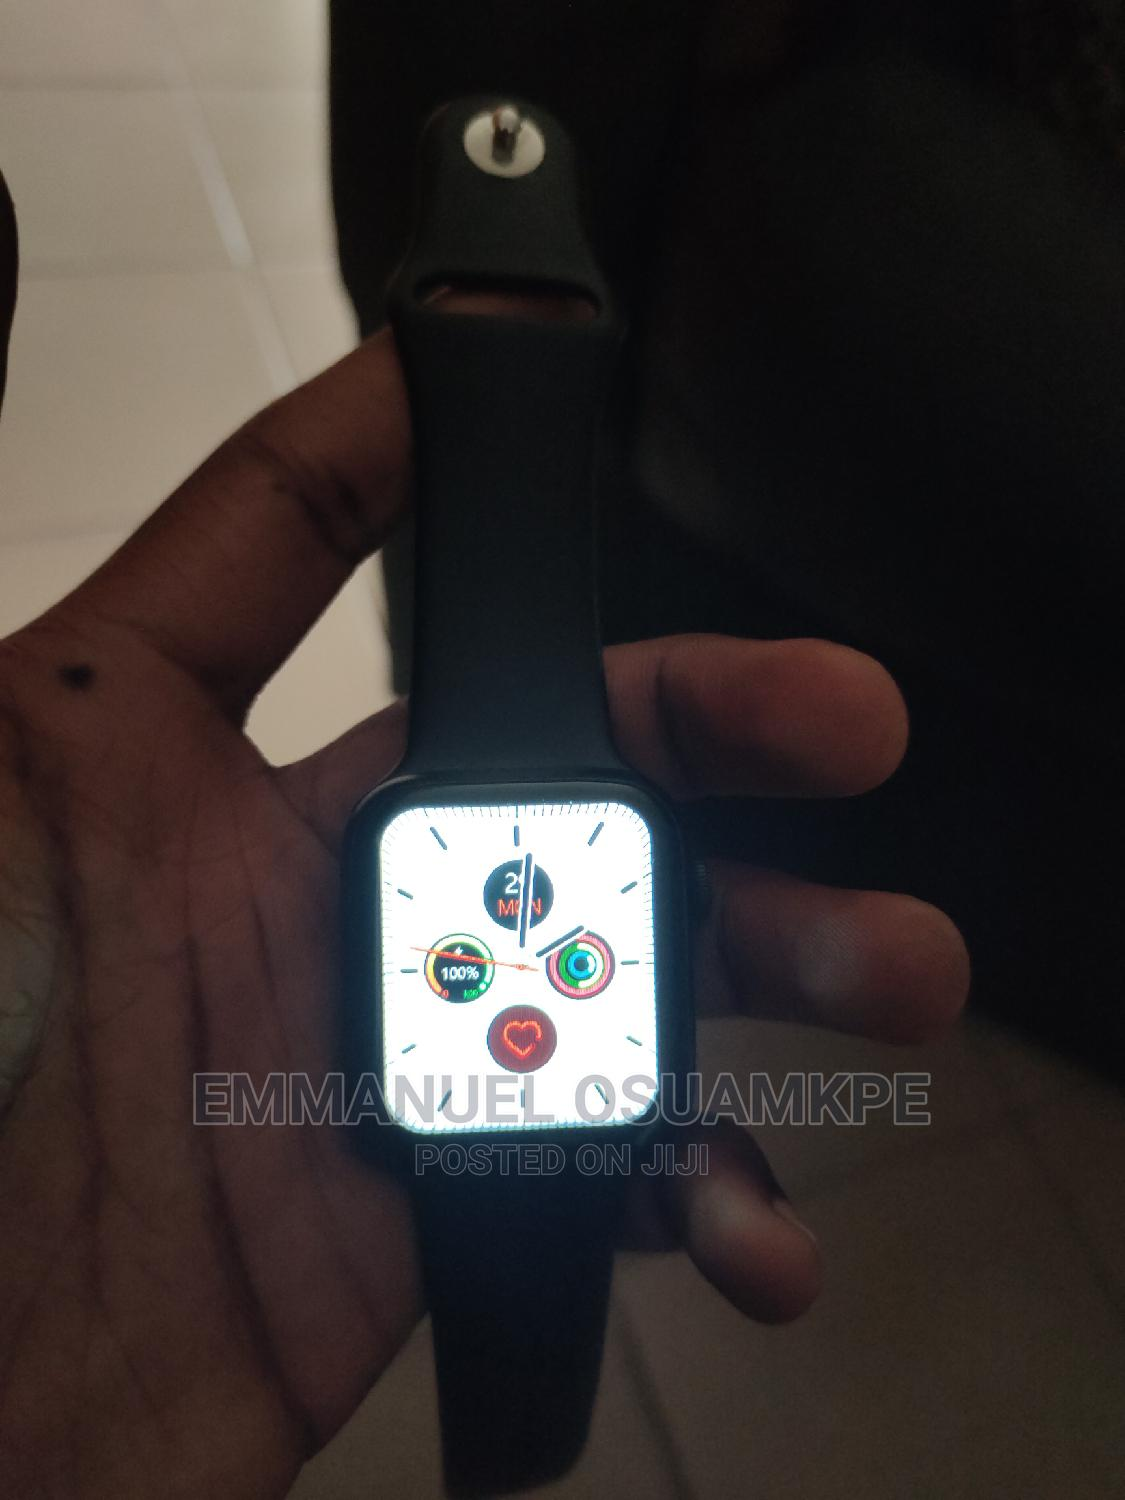 Brand New Android Smart Watch | Smart Watches & Trackers for sale in Port-Harcourt, Rivers State, Nigeria